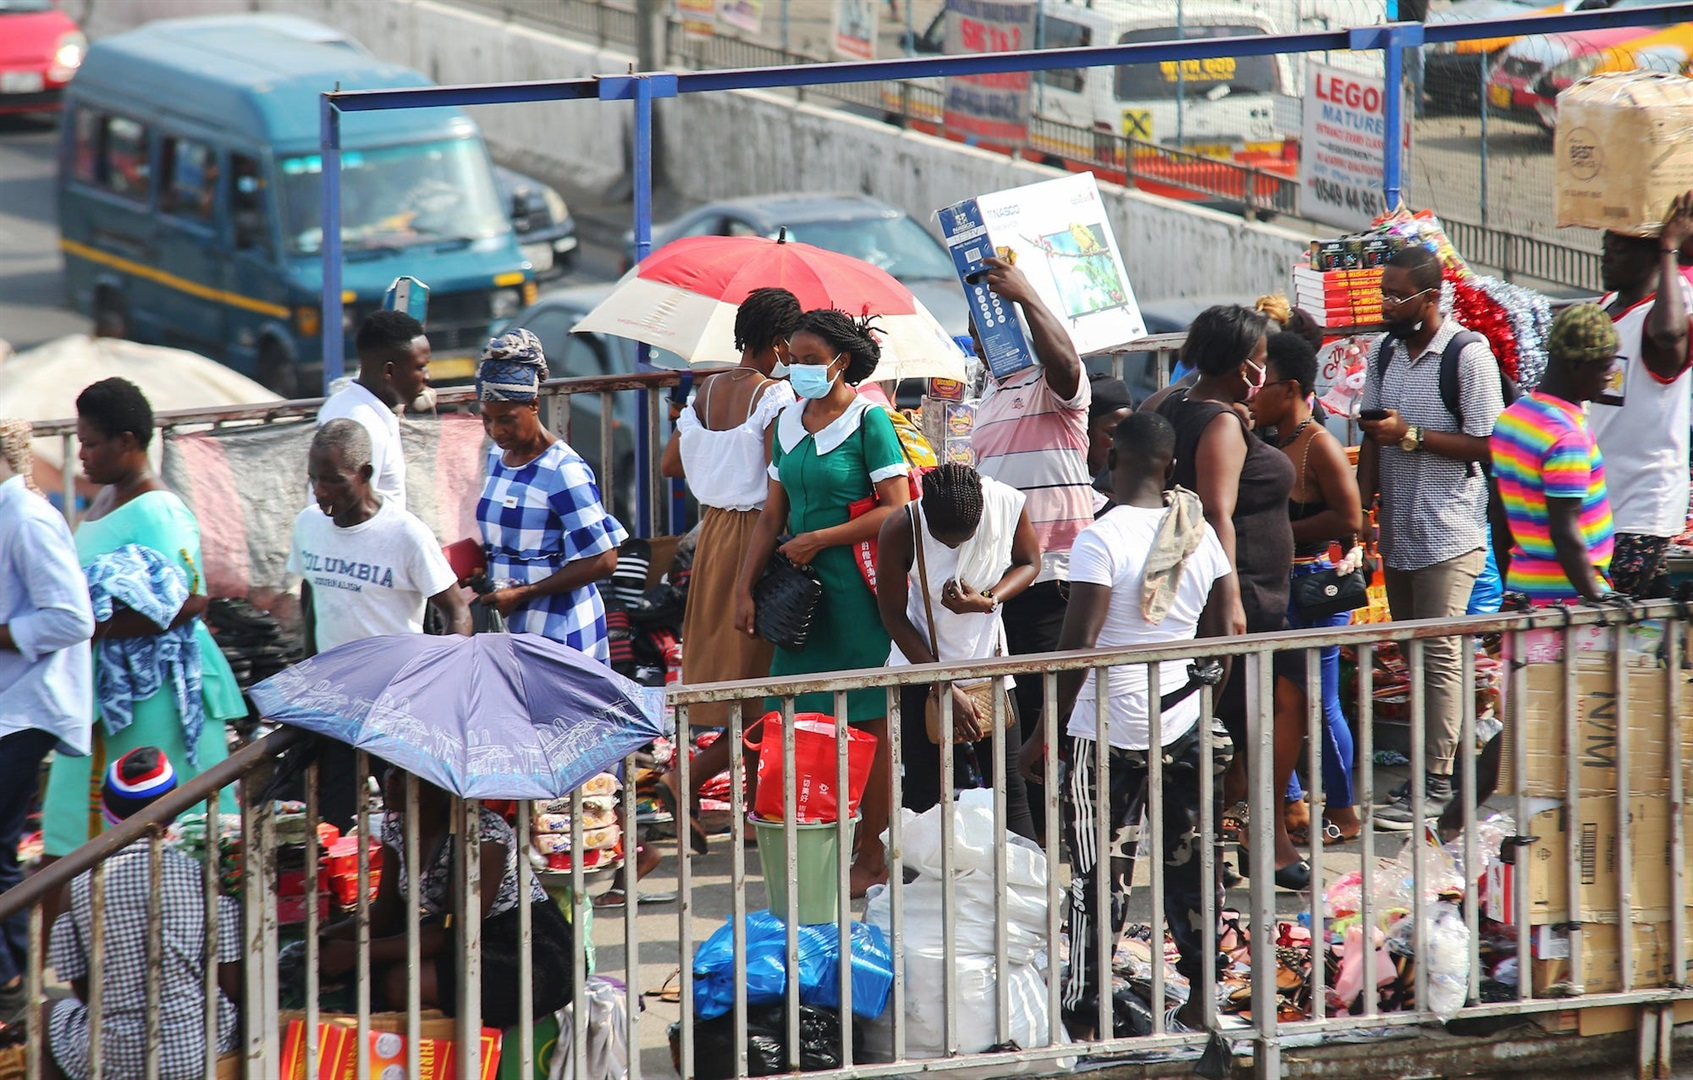 People shop at a market in Accra, Ghana during the coronavirus pandemic.